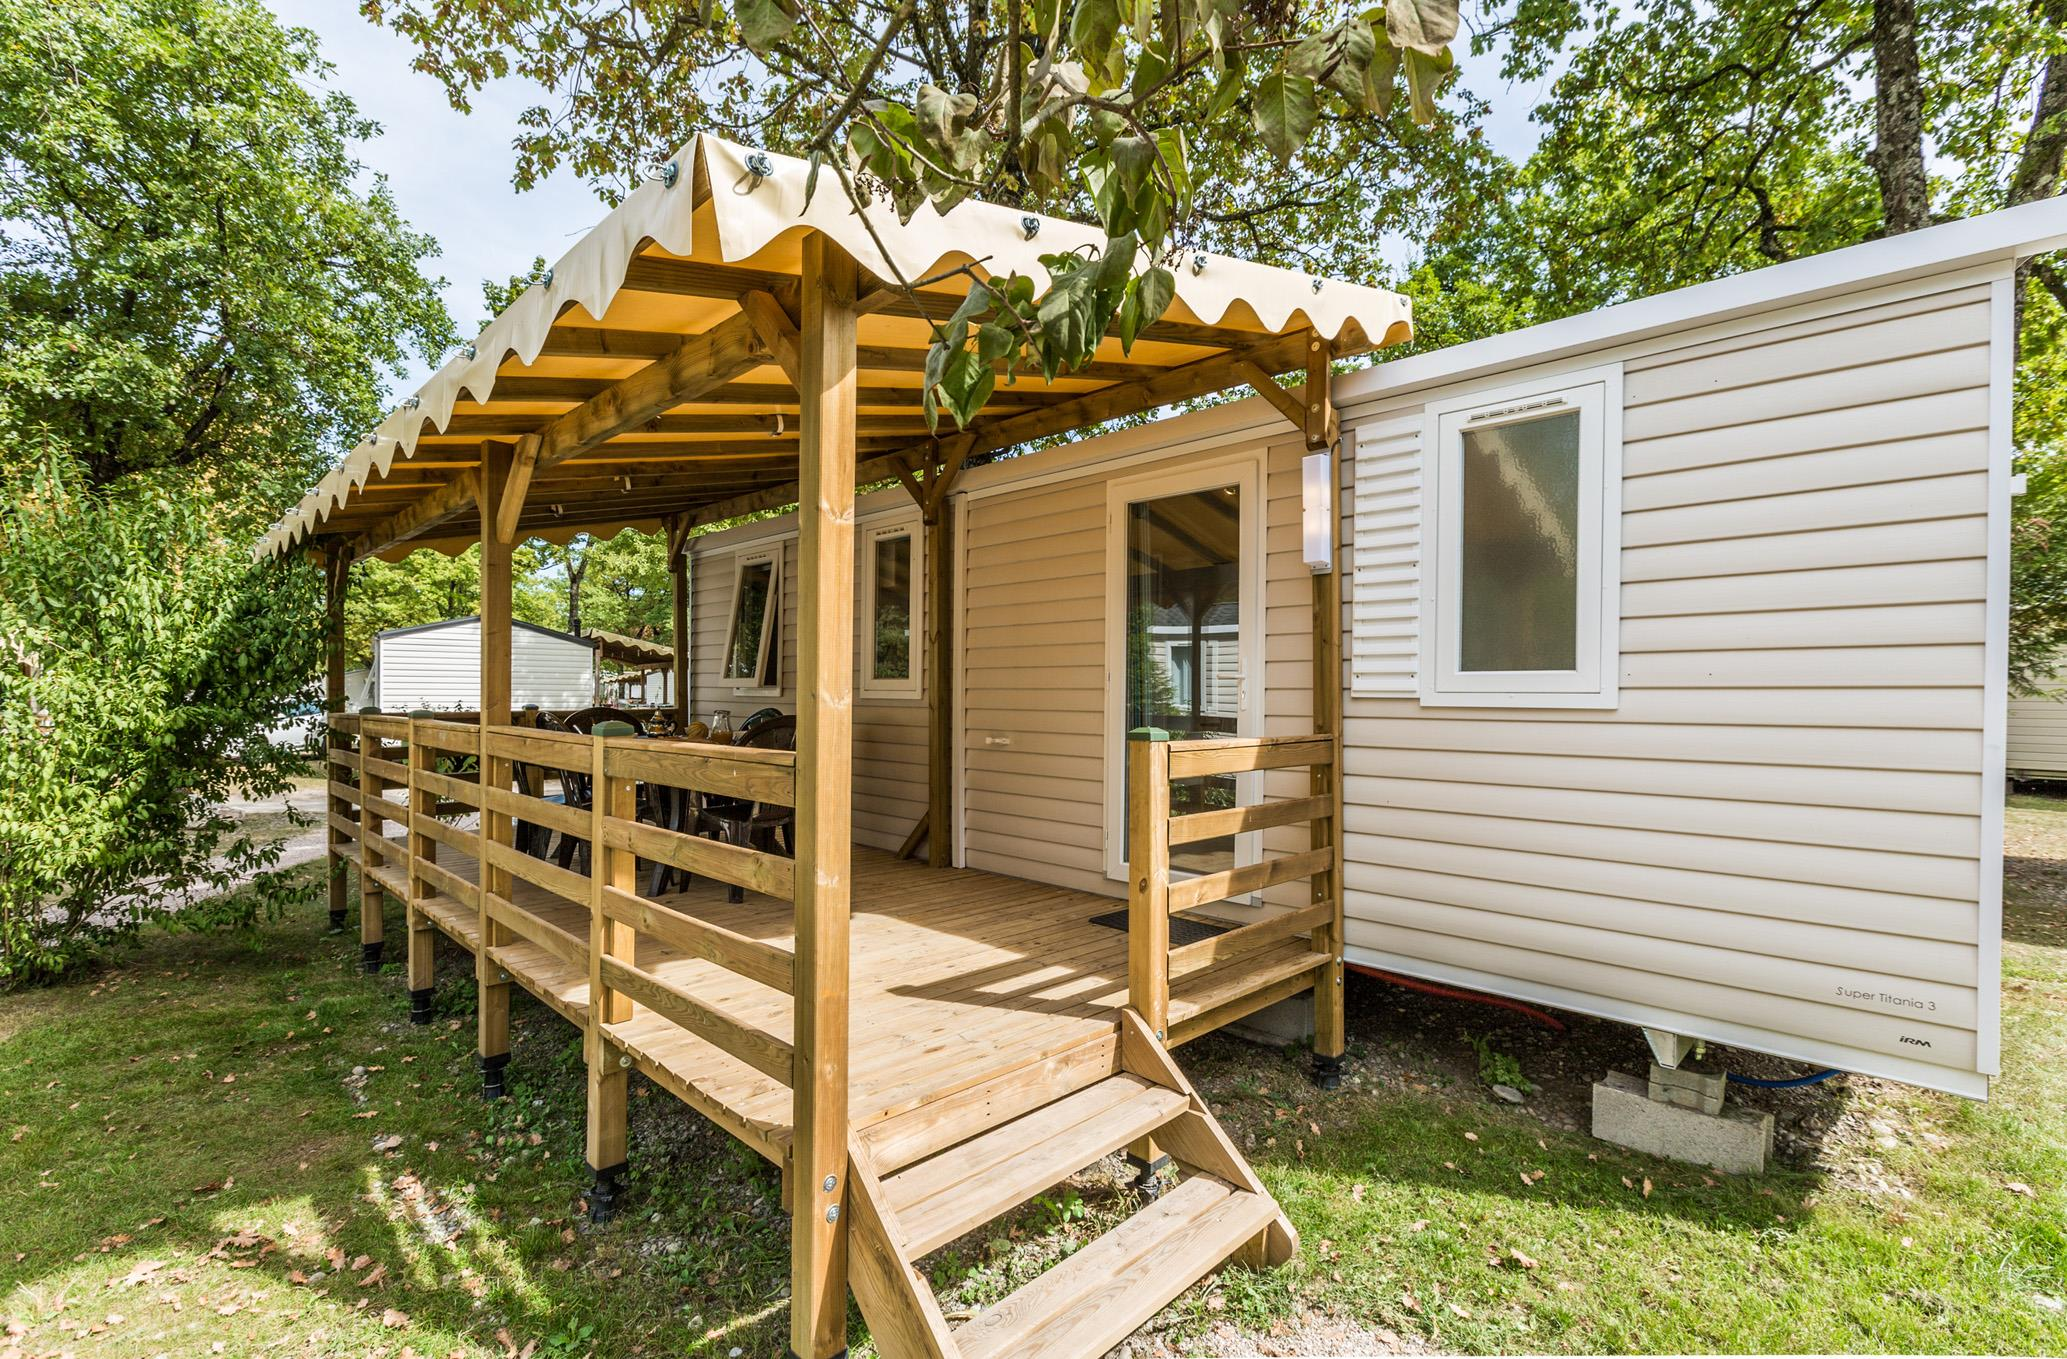 Location - Mobilhome Alpage 32M² - Terrasse Couverte 15M² (3 Chambres) - Camping Saint-Disdille